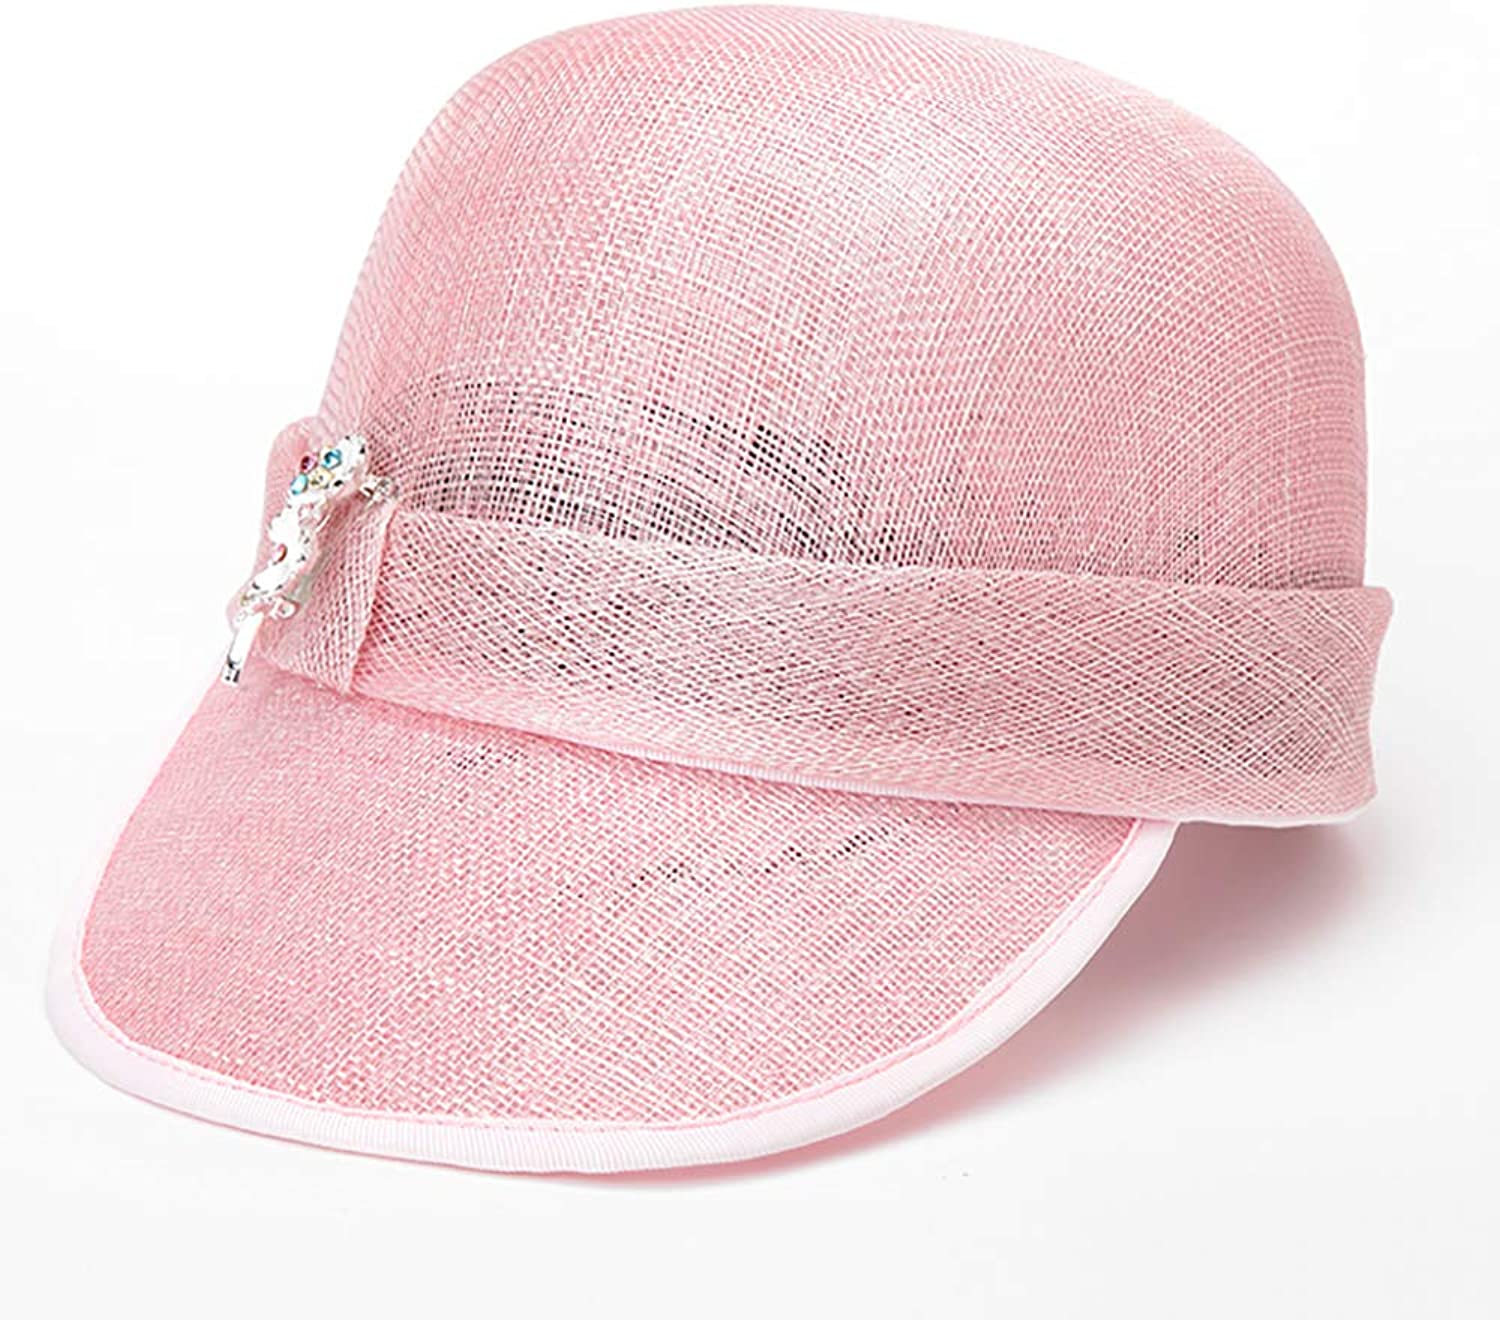 ESOCOME Baseball Cap Pink Female Hat Summer Sunhat Breathable Hat Woman